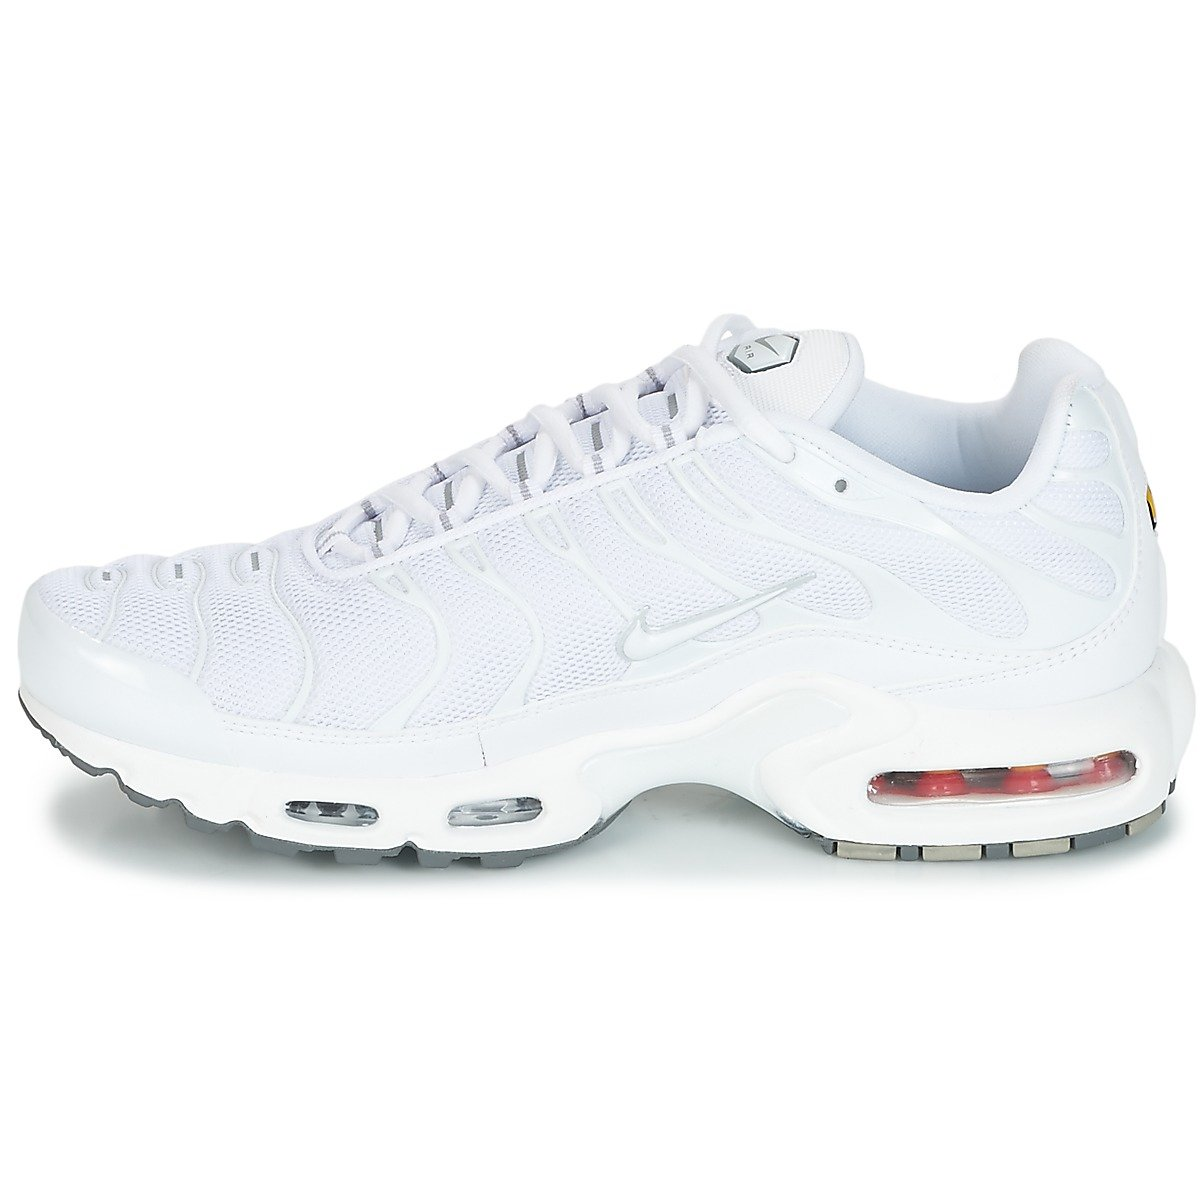 outlet store c0e2e 026c6 Amazon.com   NIKE Air Max Plus Lifestyle Fashion Sneakers White White-Black-Cool  Grey New 604133-139 - 14   Running